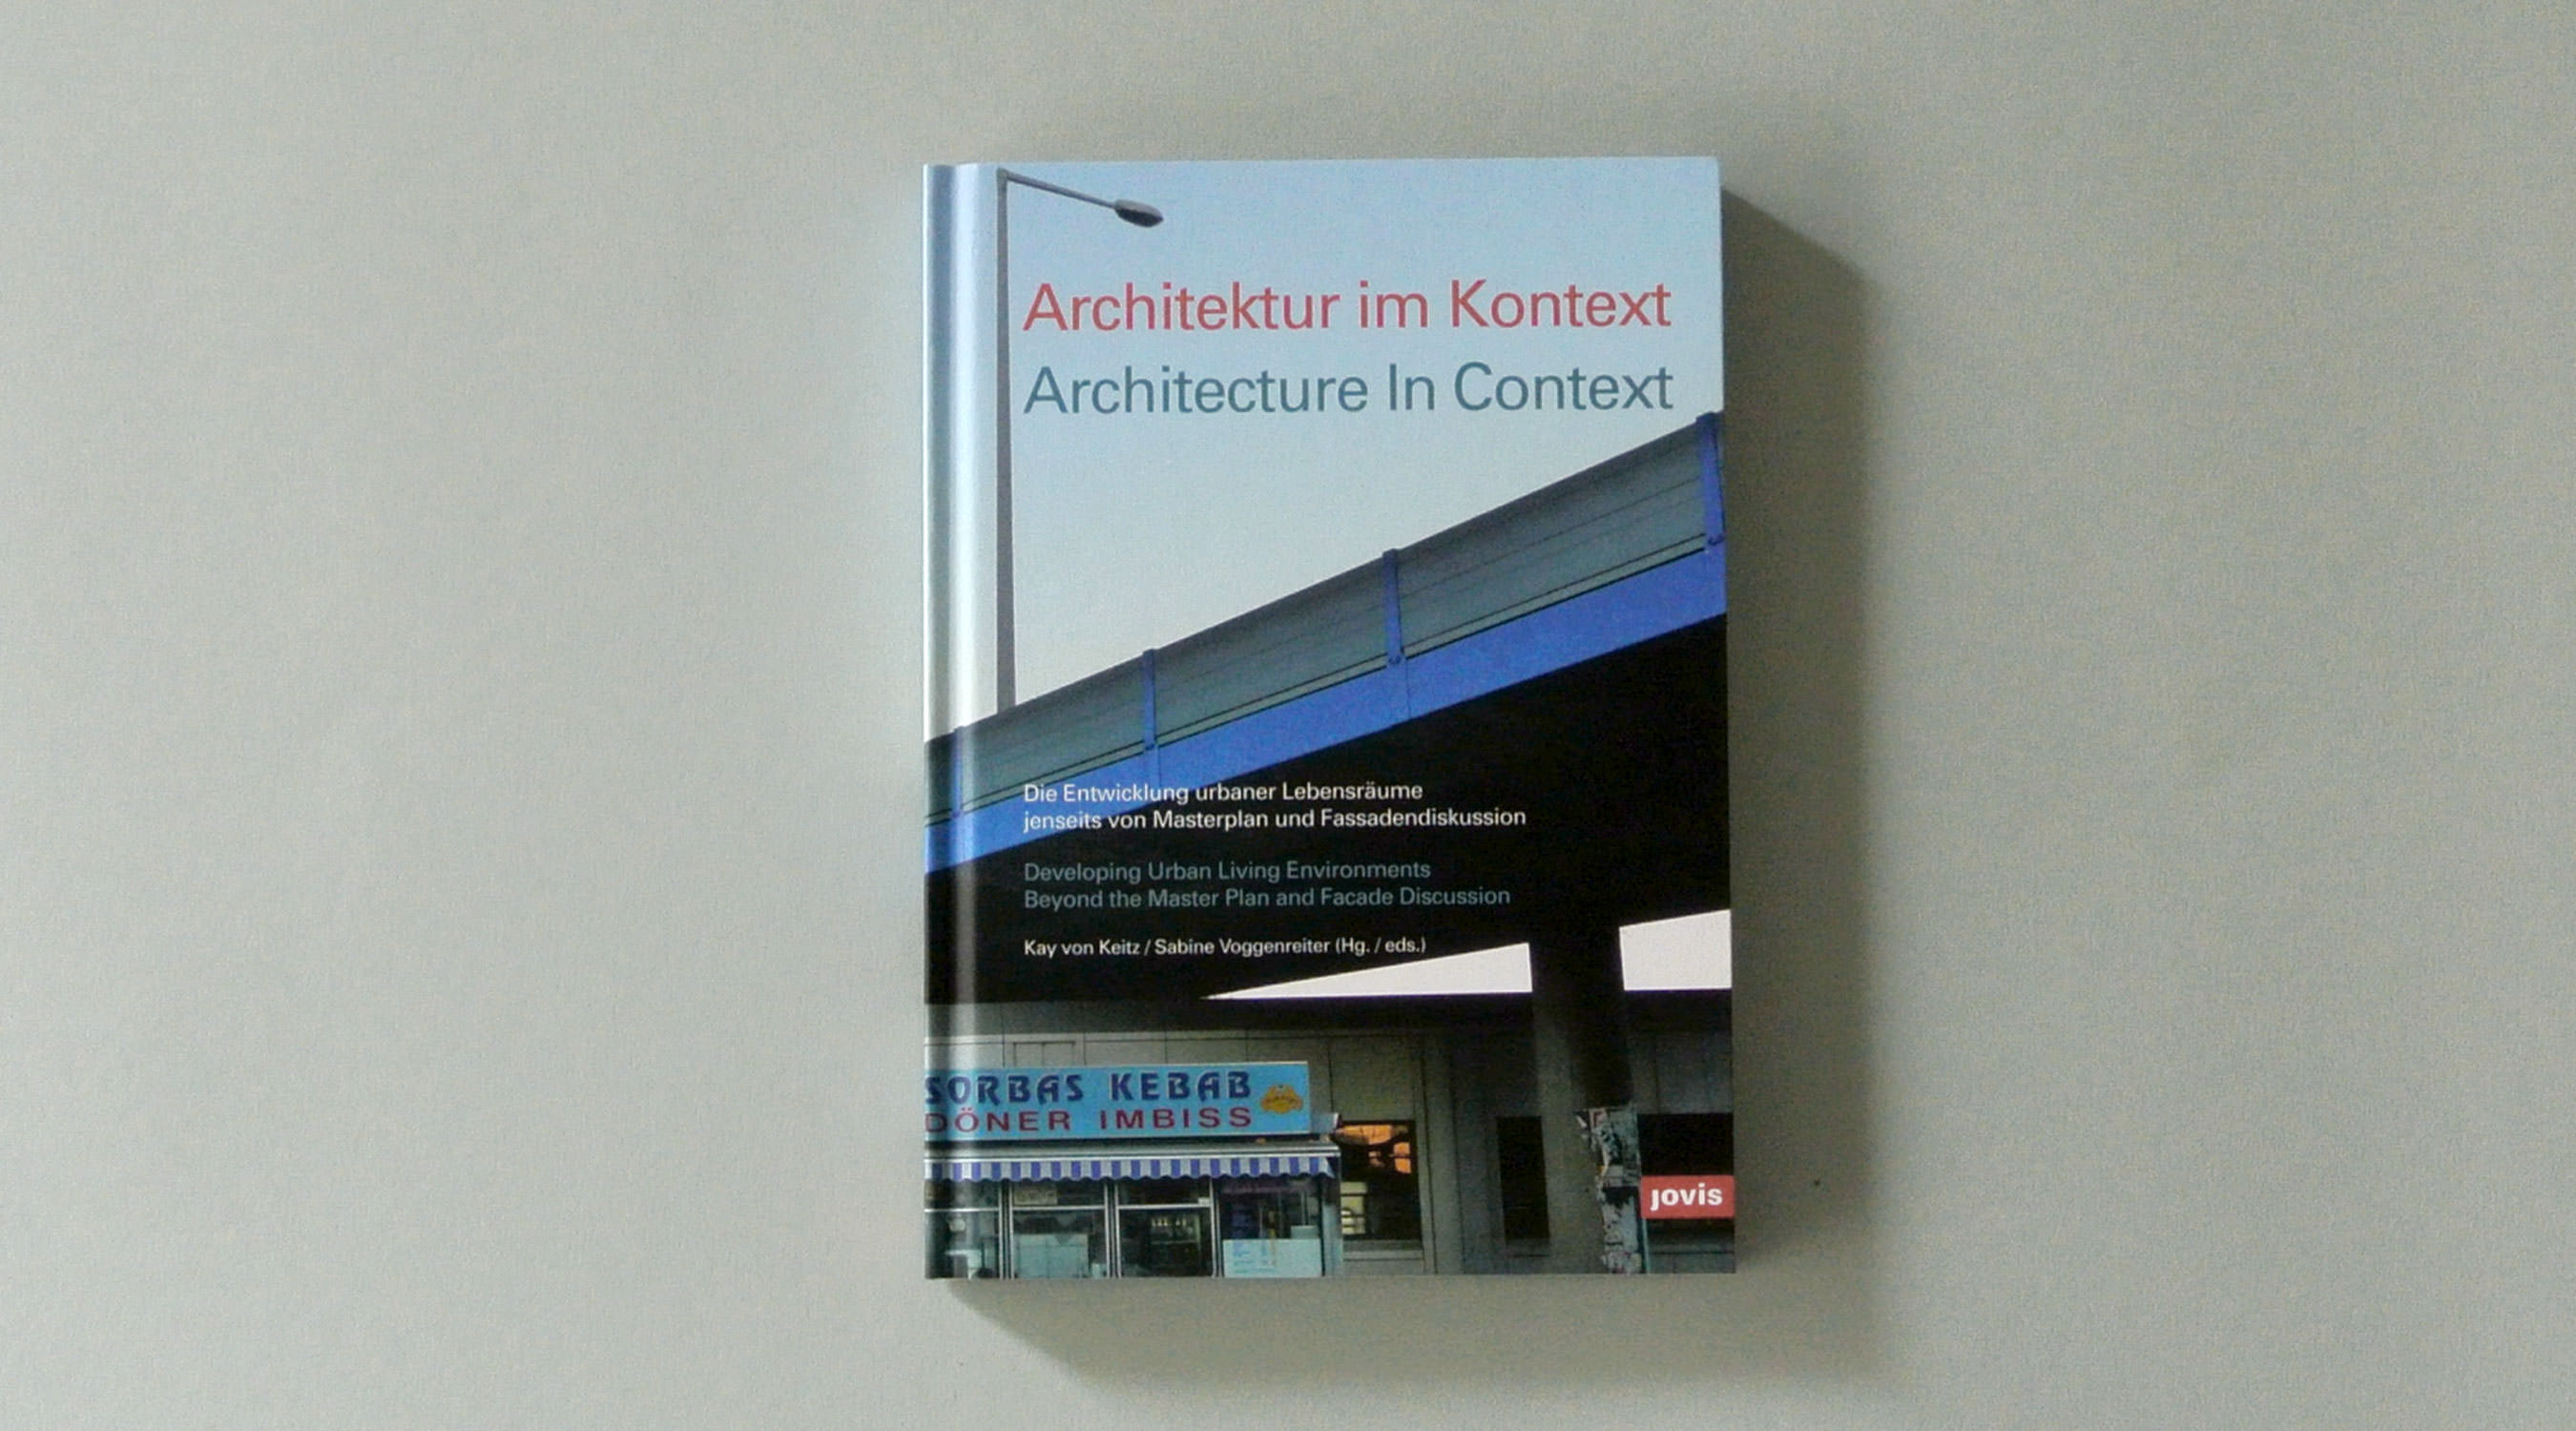 Architektur im Kontext